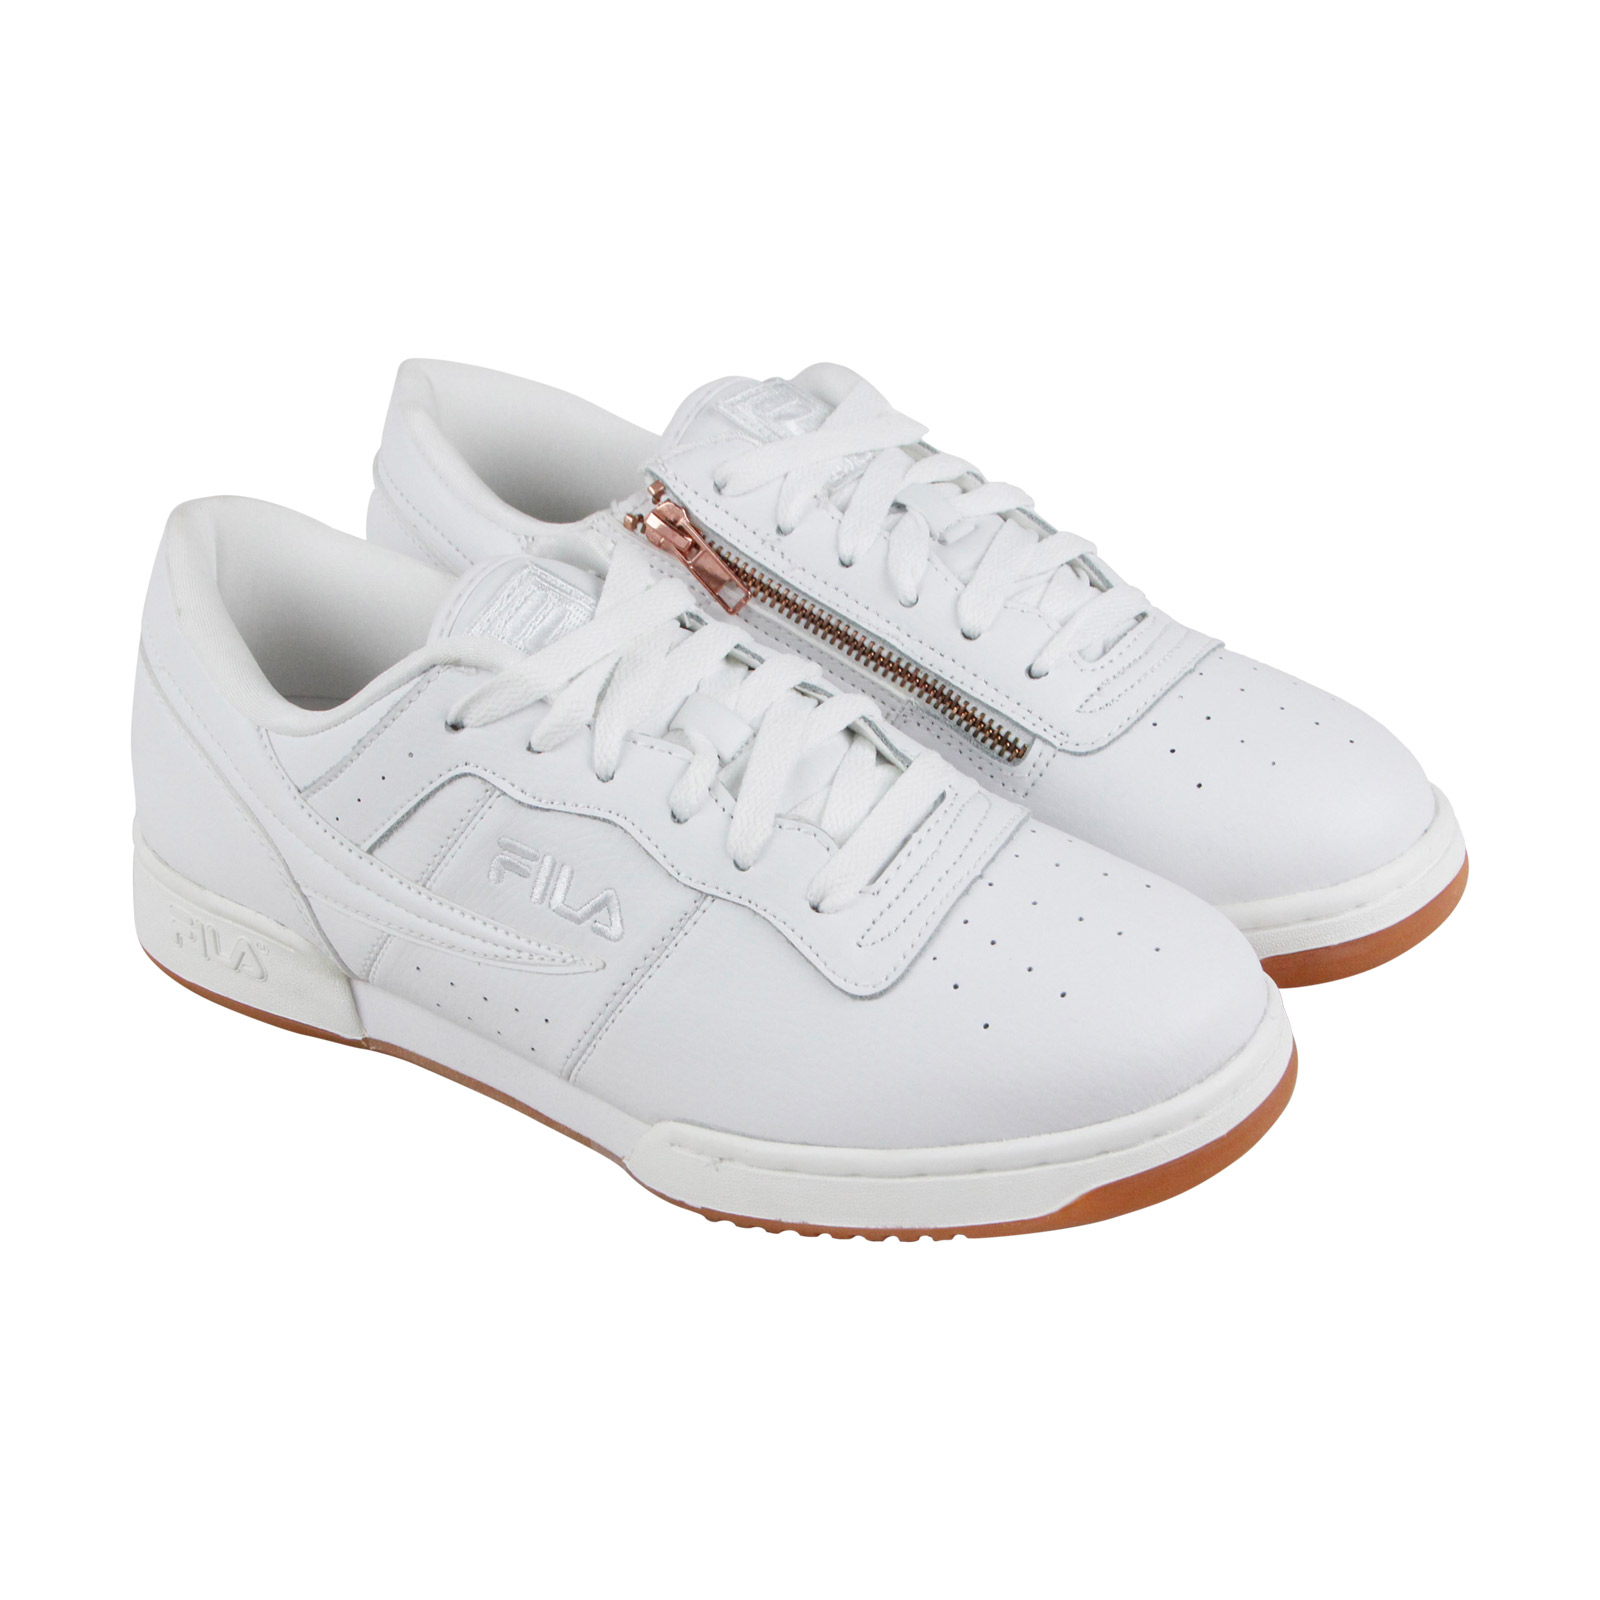 Fila Original Fitness Mens White Leather Athletic Lace Up Training Shoes by Fila